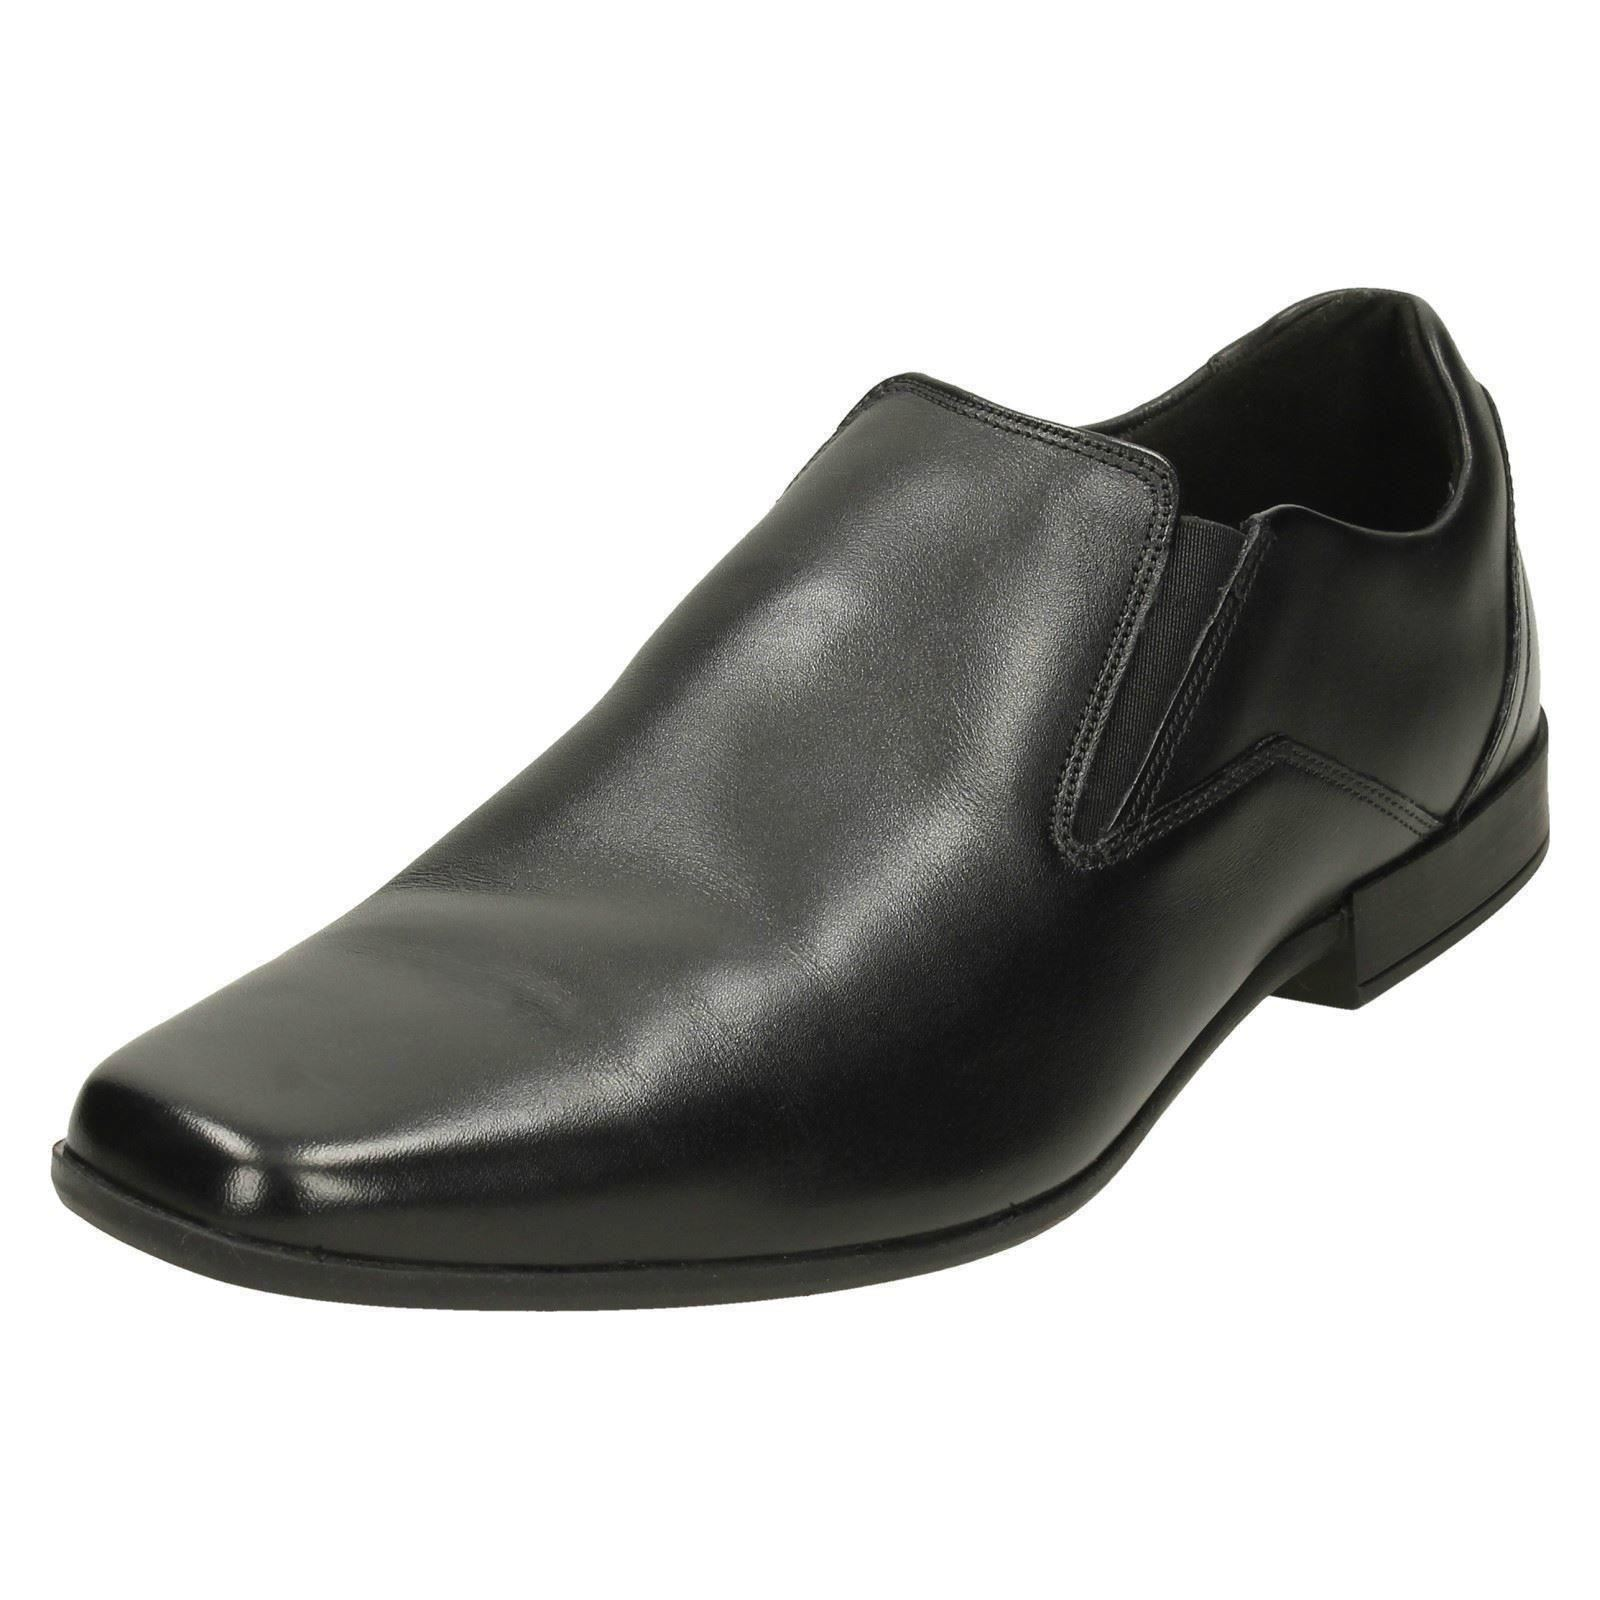 Mens Clarks Formal Shoes Shoes Formal 'Glement Slip' 9550e9